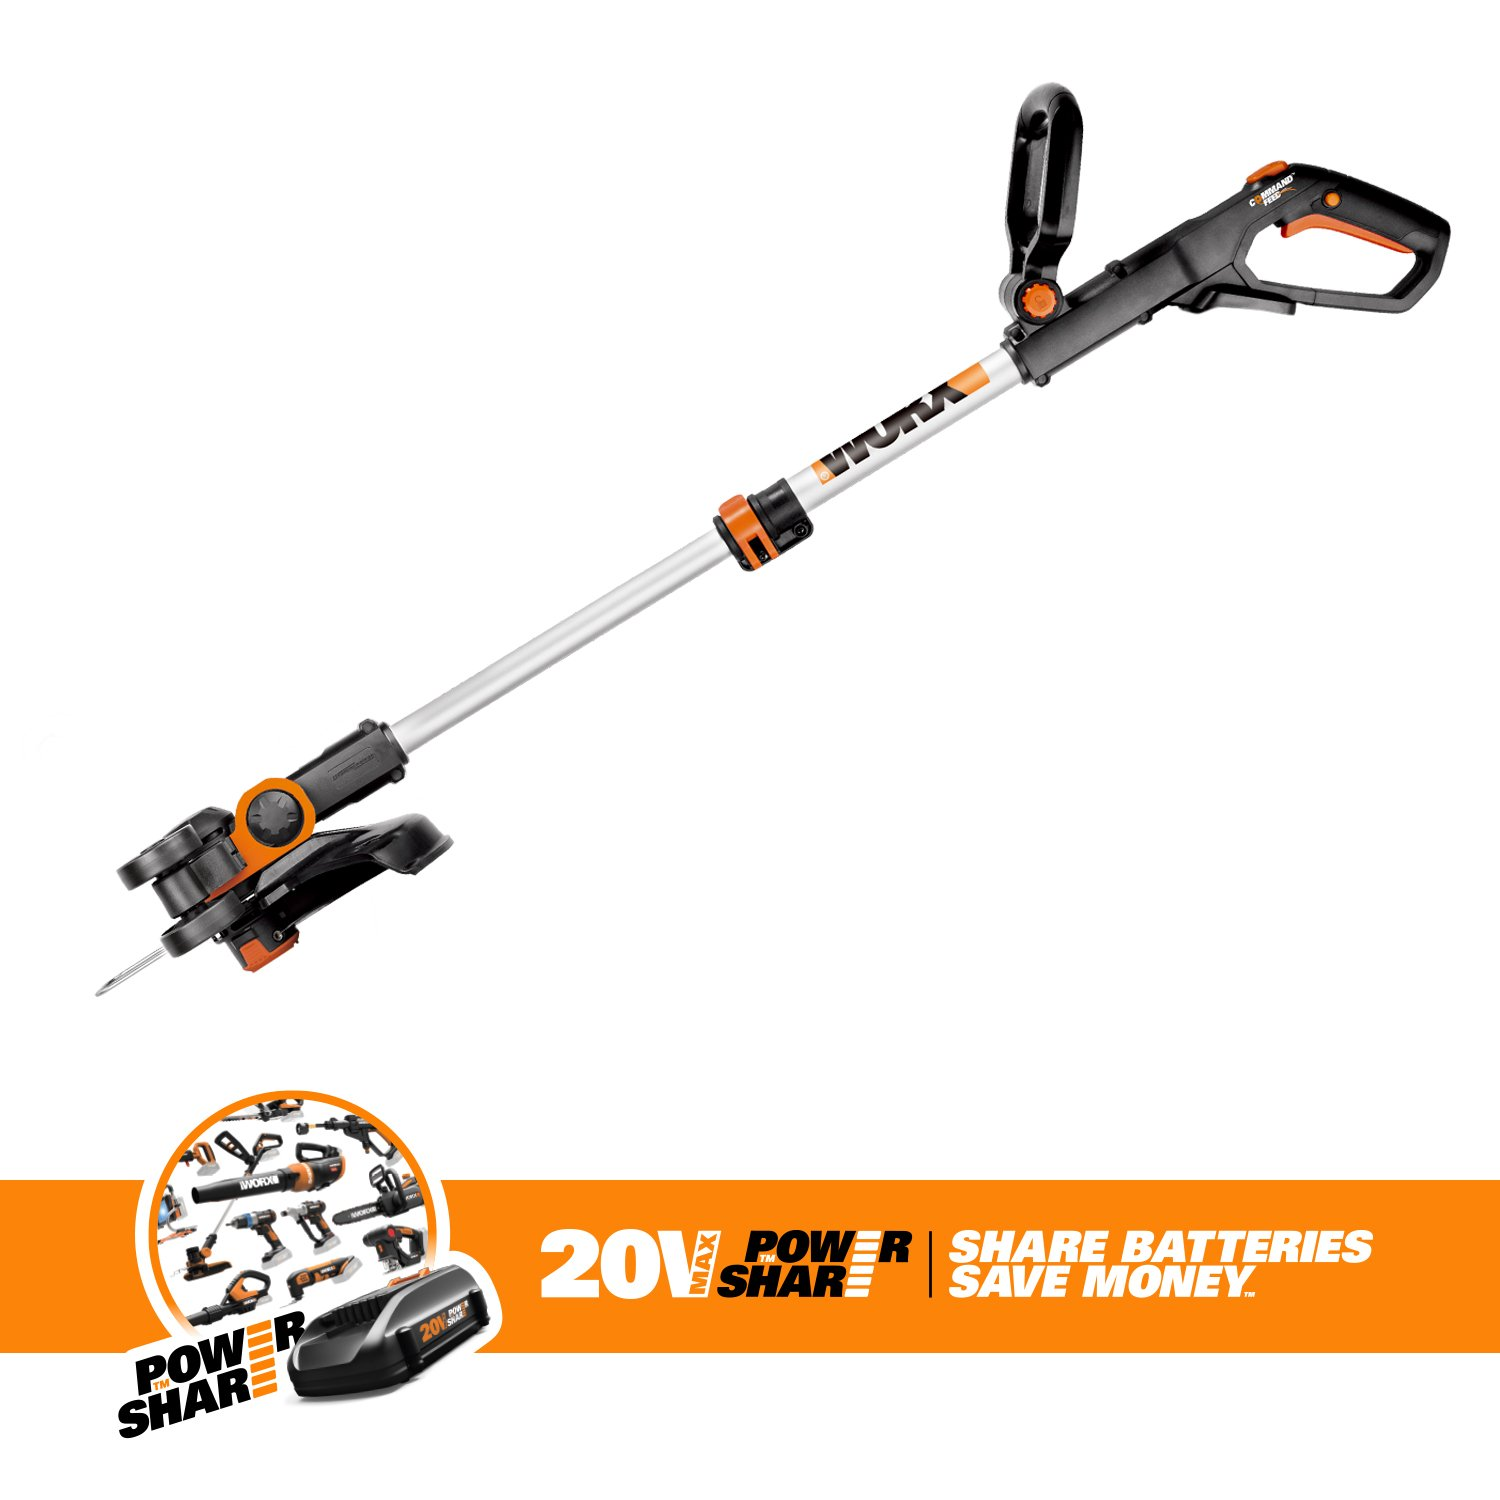 Worx Wg1639 20v Cordless Grass Trimmer Edger With Weed Eater Diagram And Parts List For Weedeater Grasslinetrimmer Command Feed 12 Tool Only Garden Outdoor